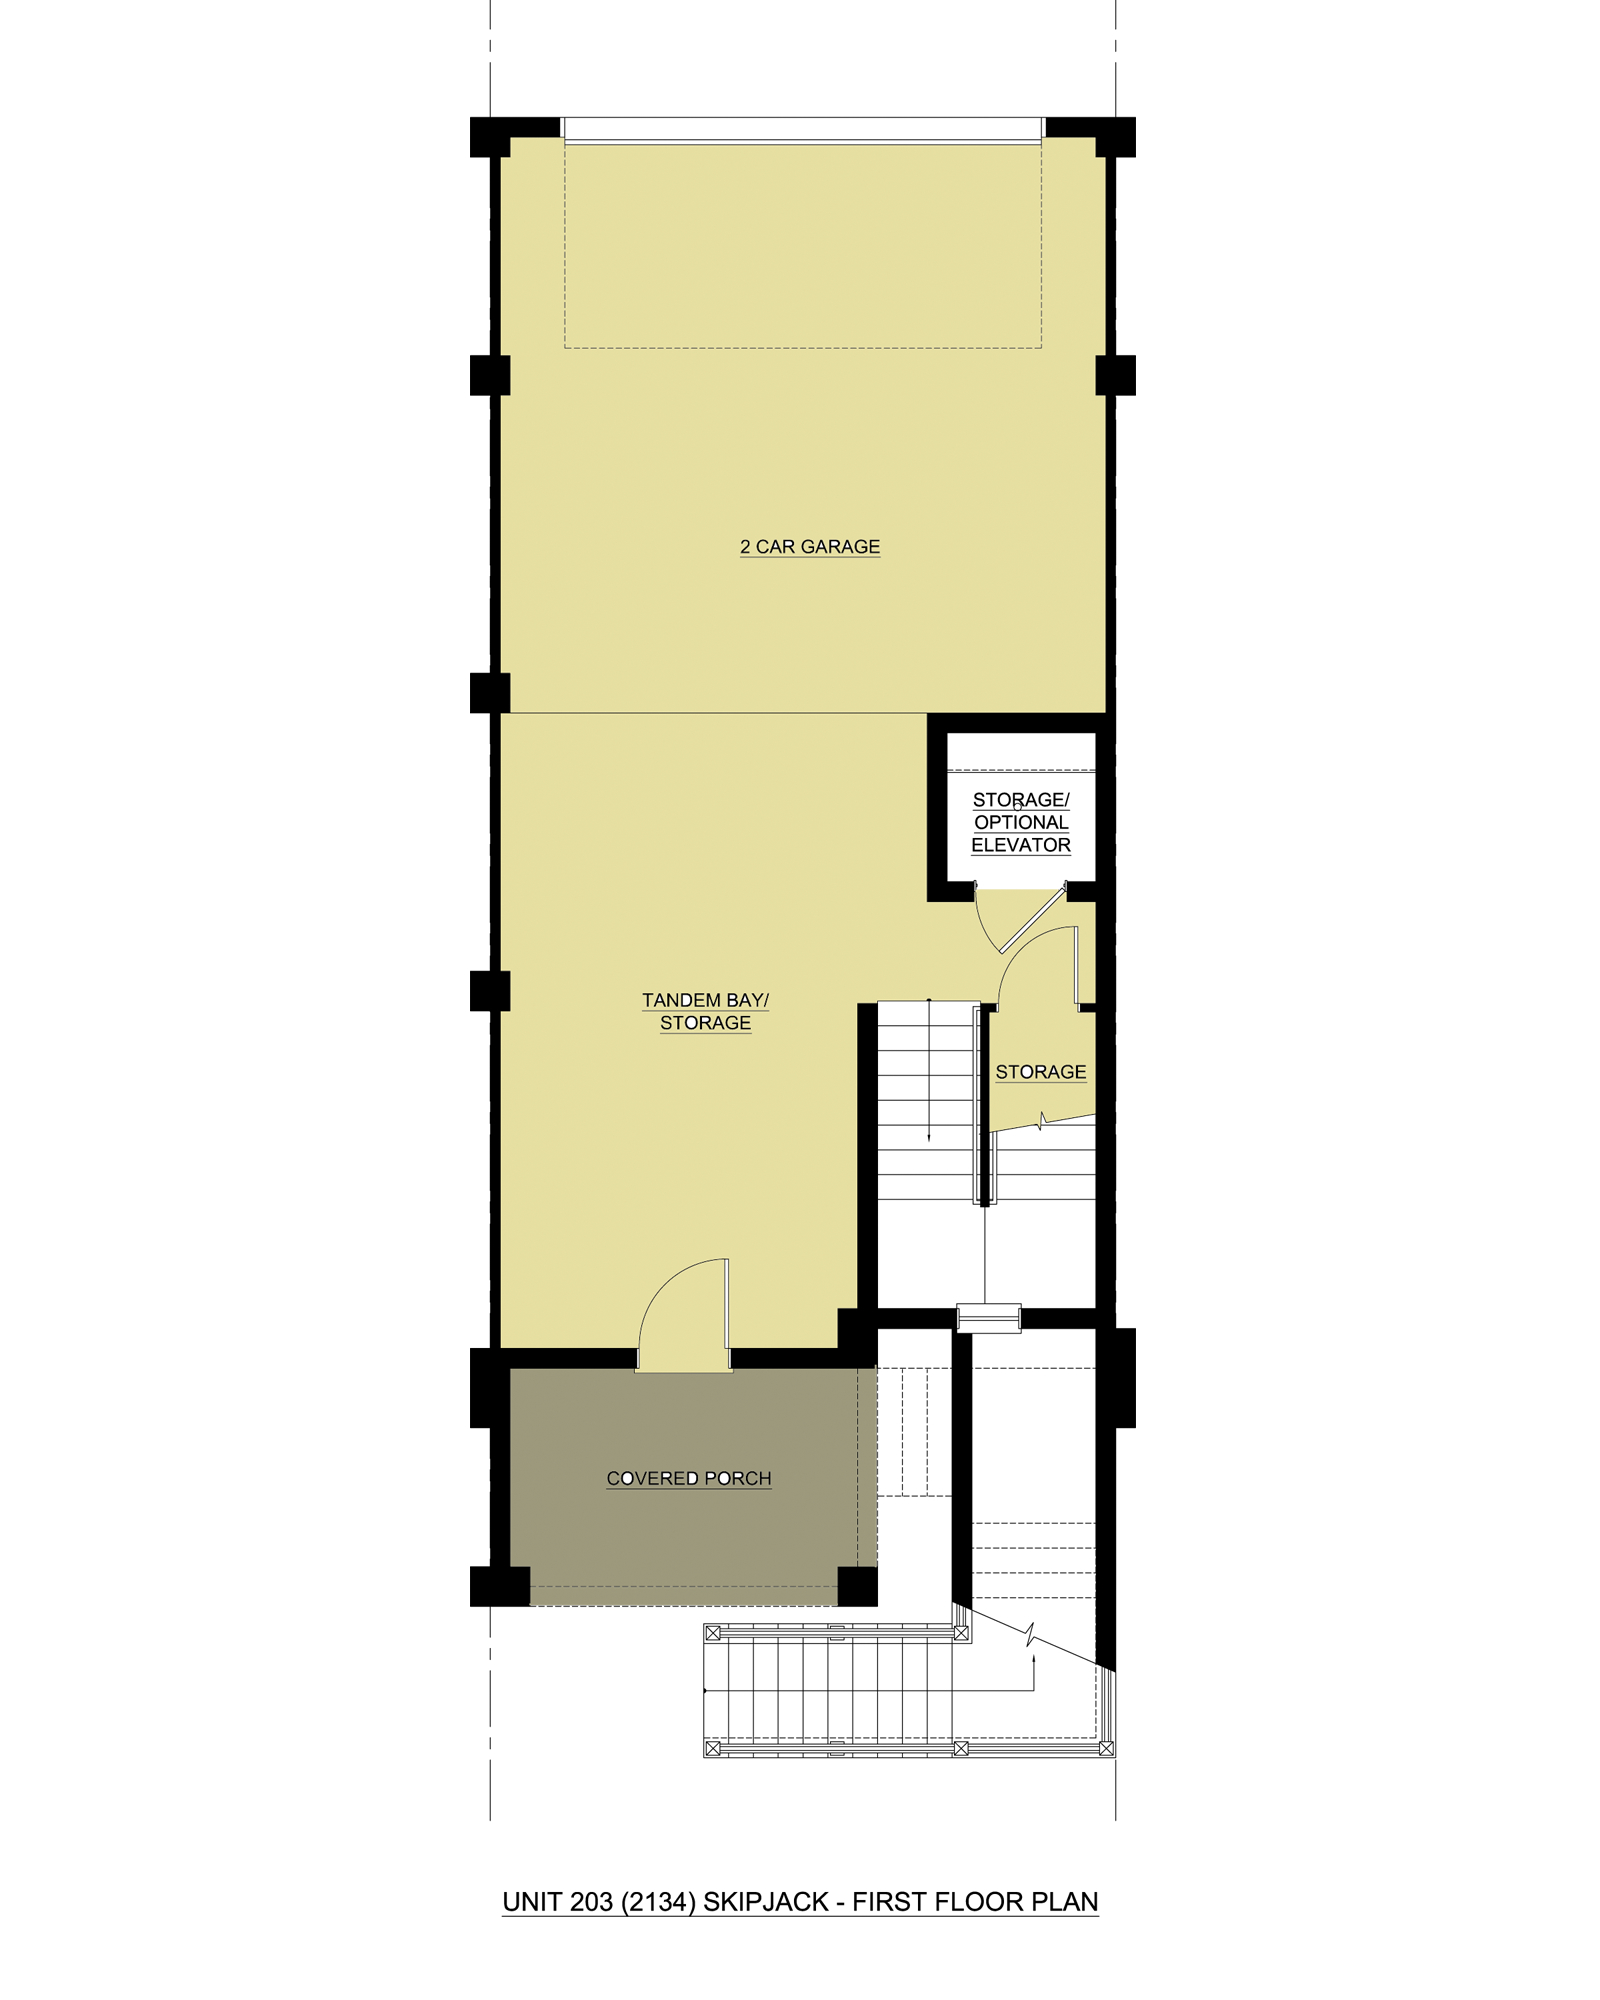 Skipjack w/ Loft,  - First Floor